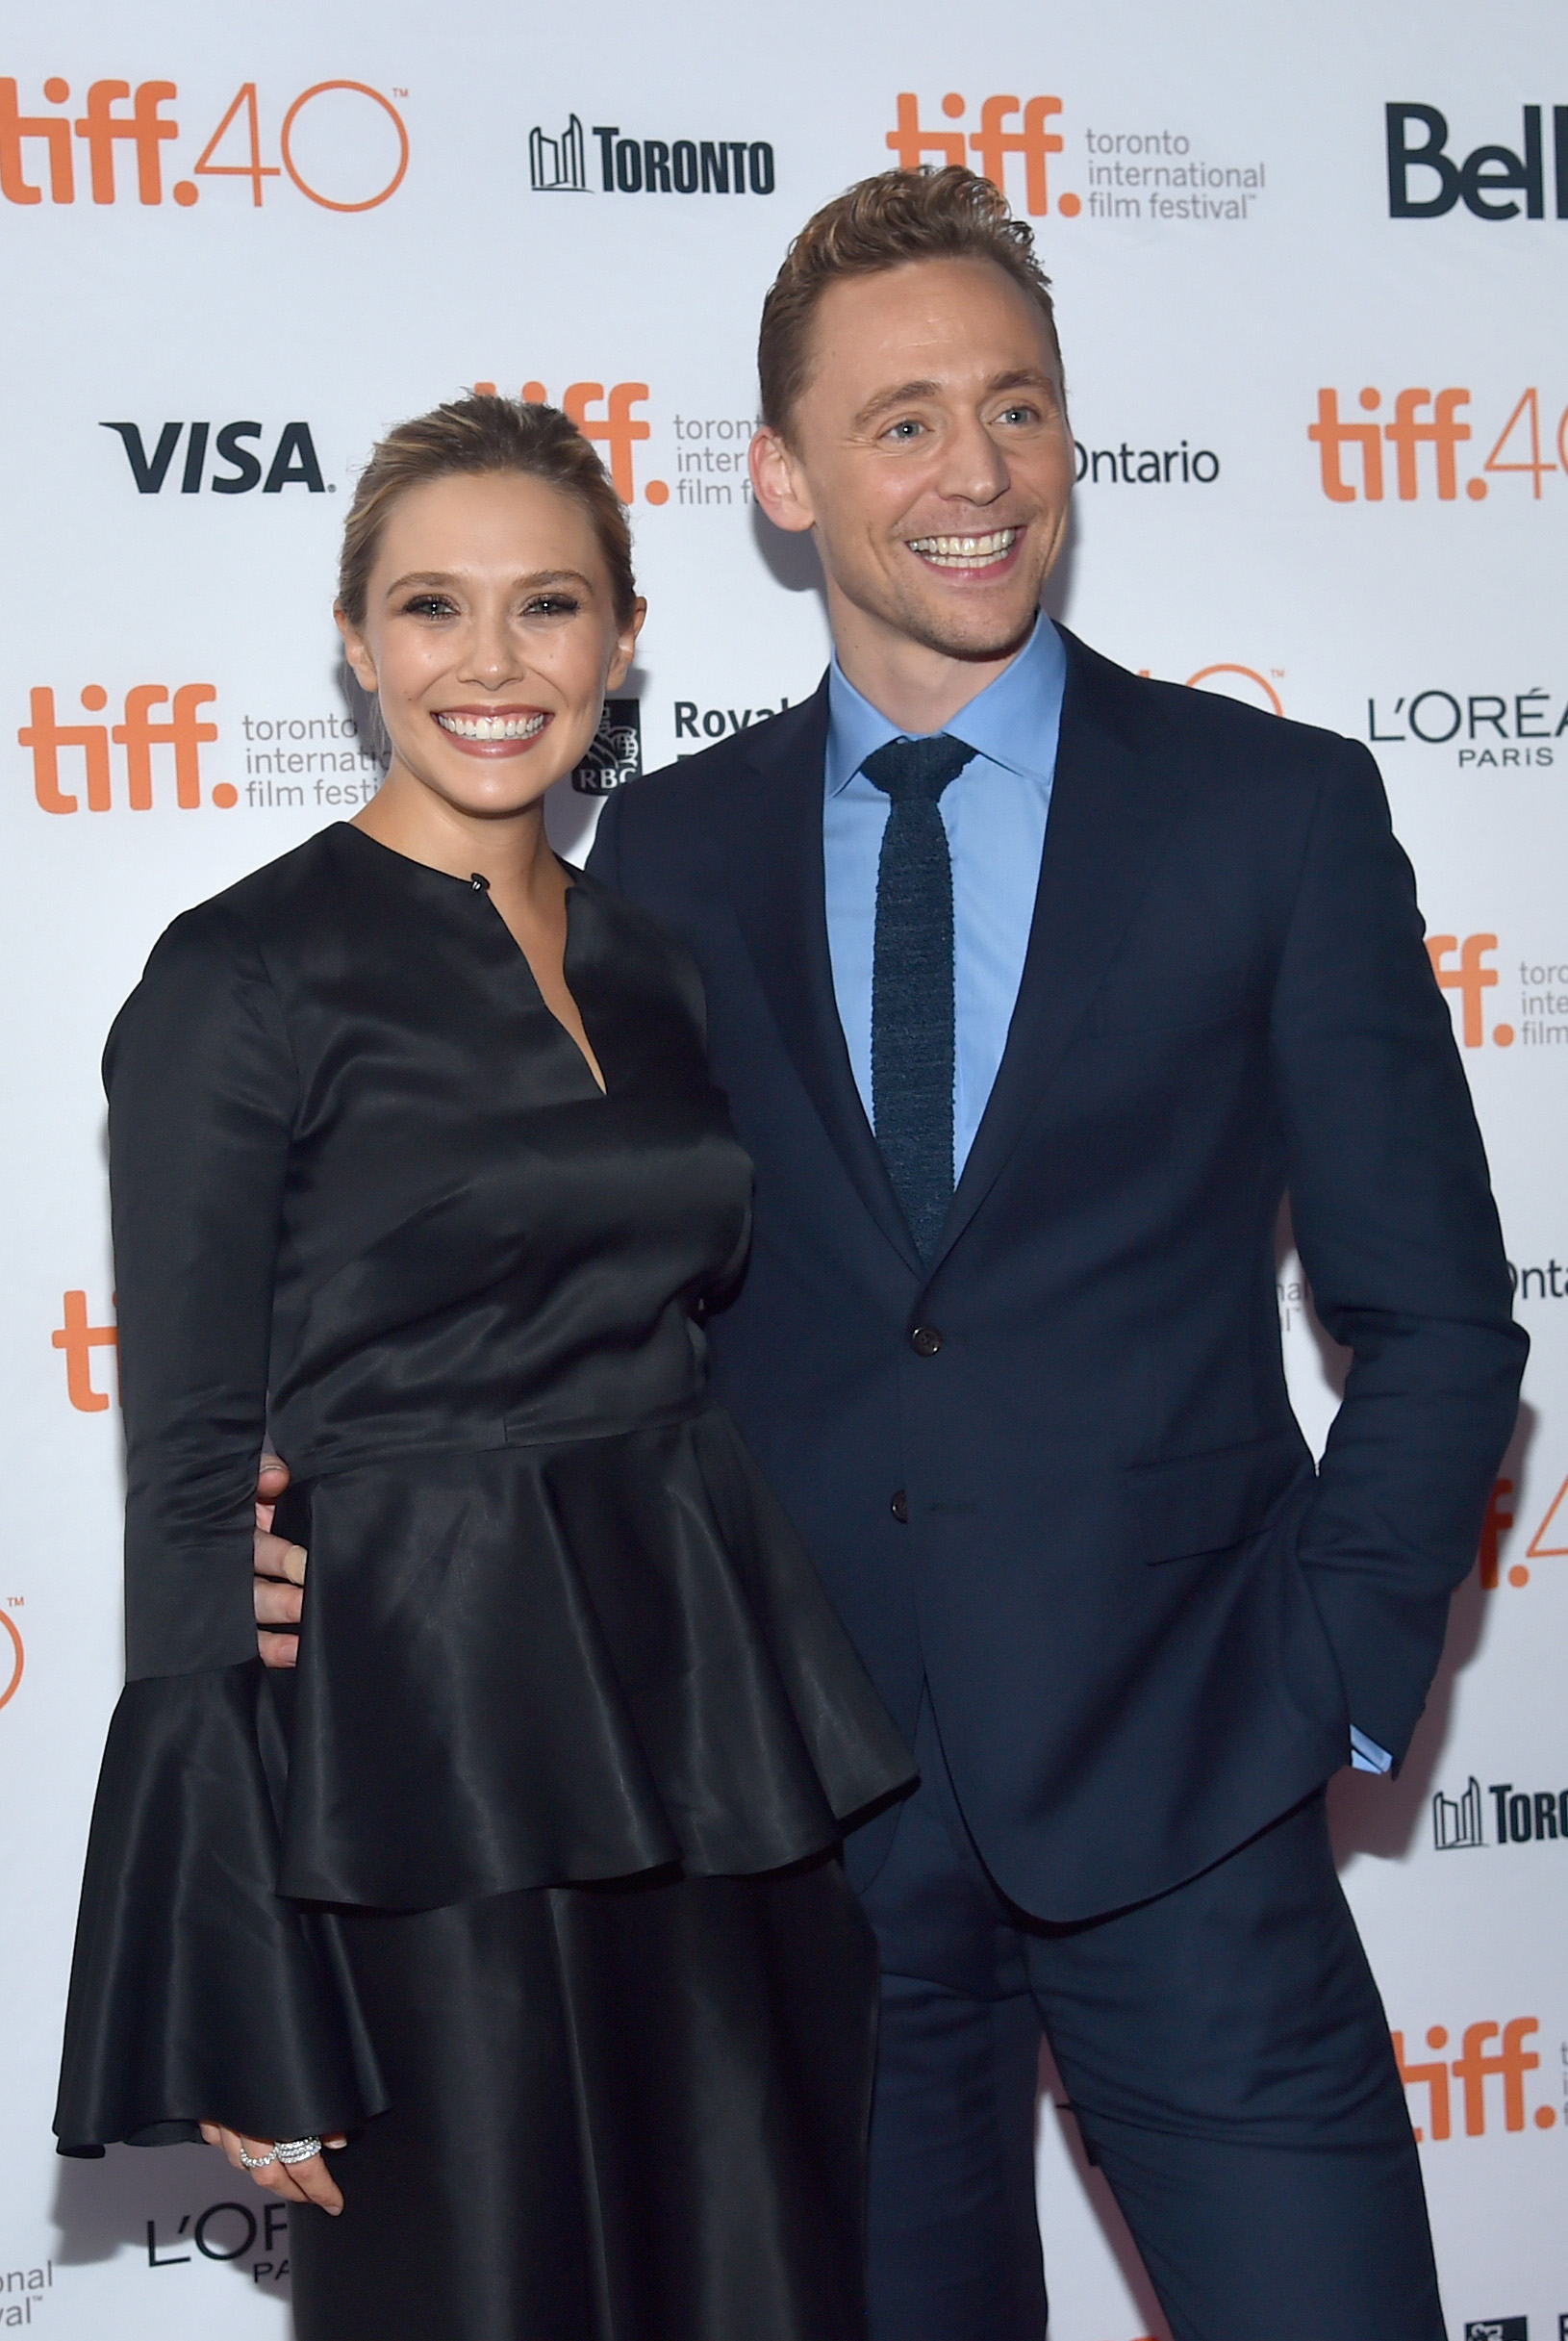 Who is tom hiddleston dating now